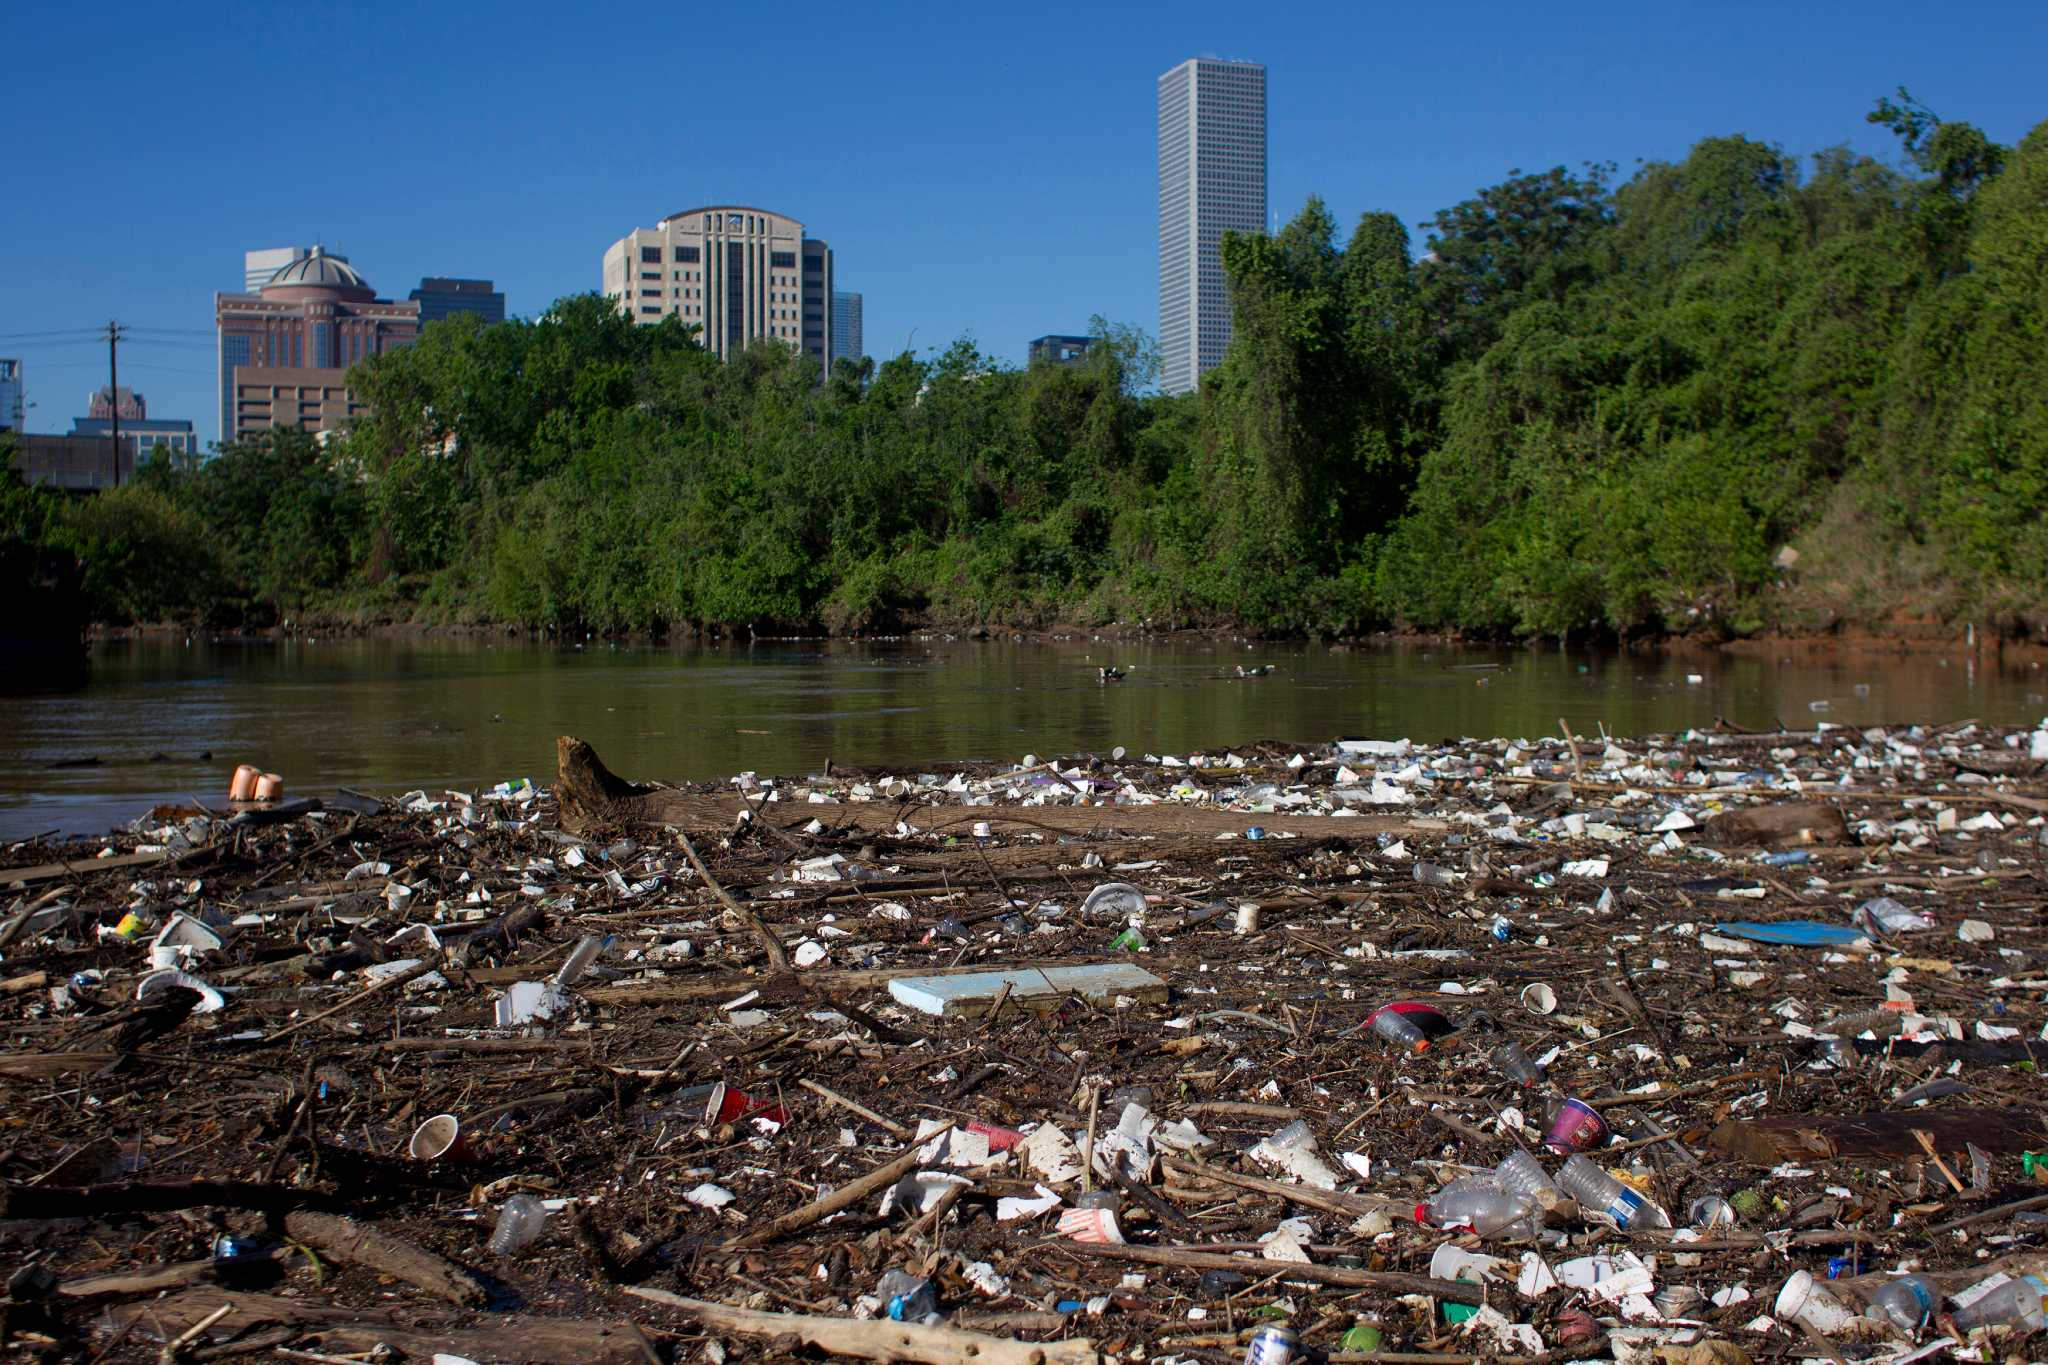 Behold Houston's picturesque Bayou system.